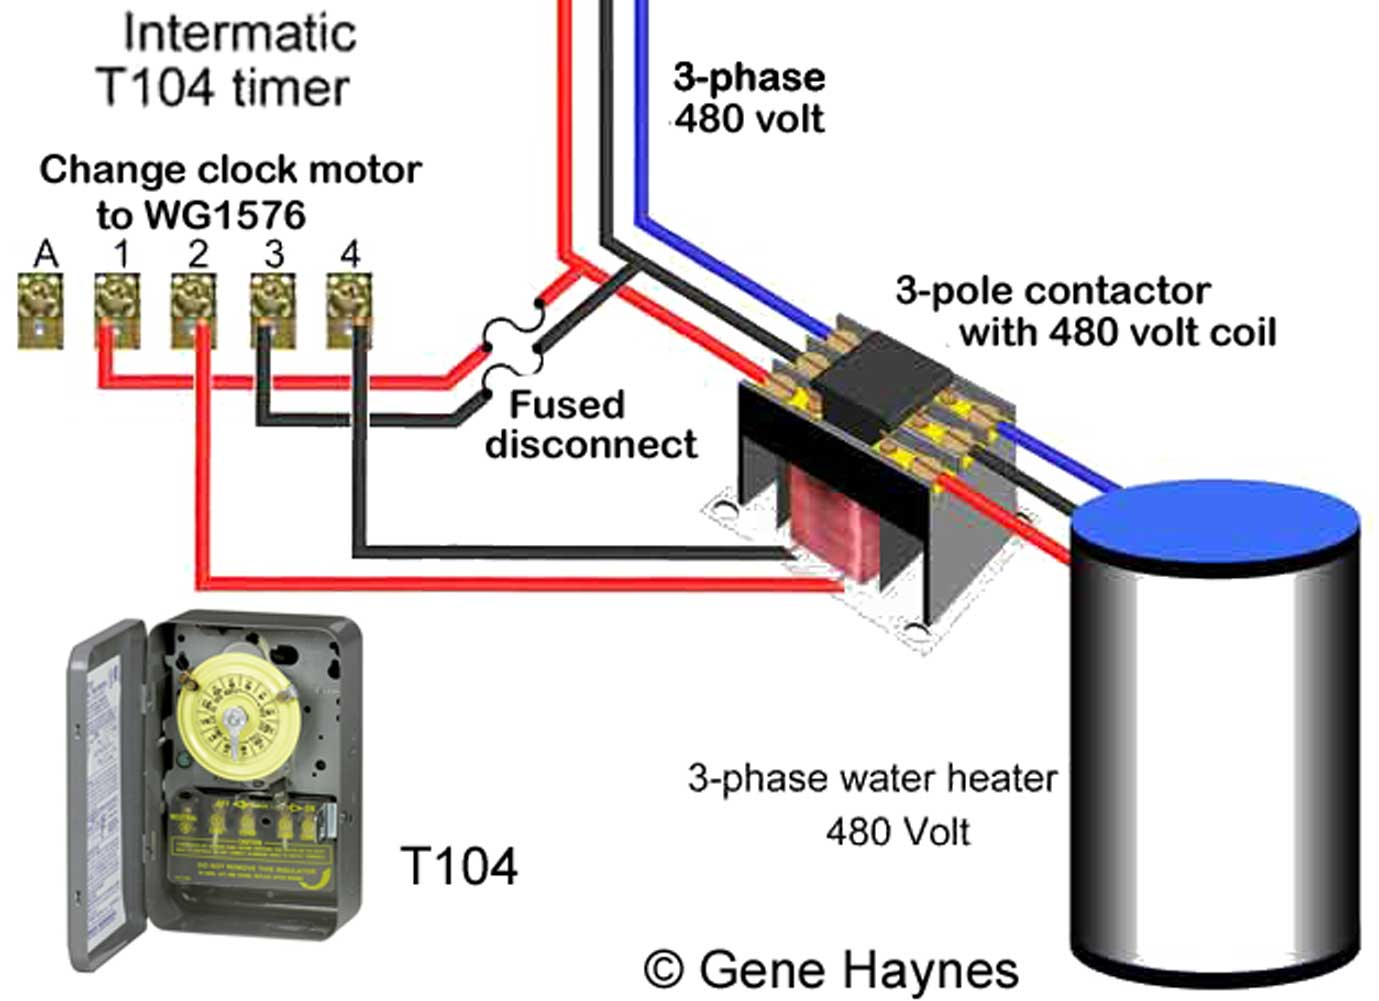 How To Wire Intermatic T104 And T103 T101 Timers Time Clock Wiring Diagram 480volt Timer Control 480 V 3 Phase Using Change 240v Wg1573 Motor Wg1576